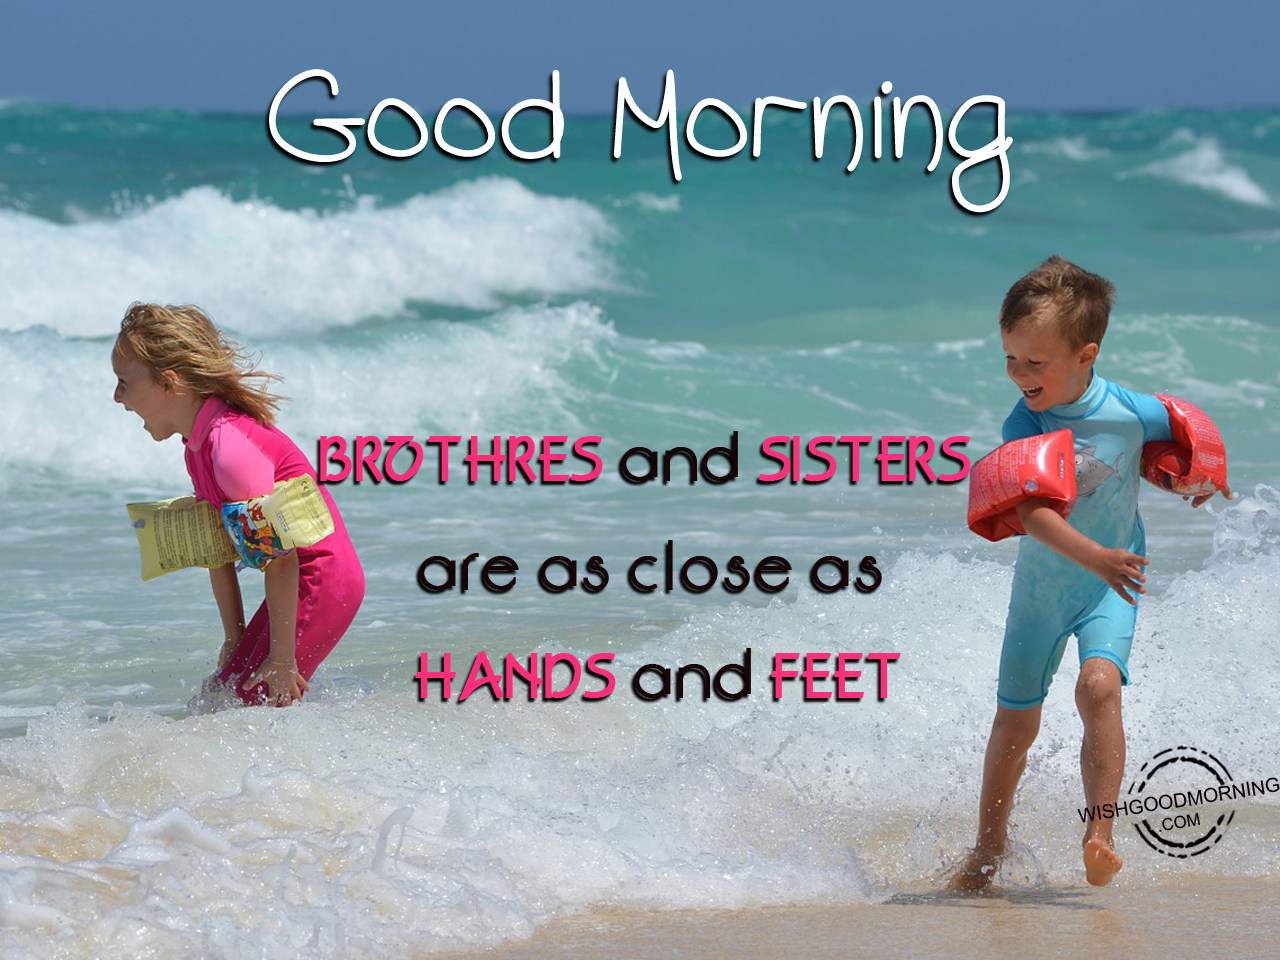 Good morning messages for brothers amp sisters good morning wishes good morning messages for brothers amp sisters good morning wishes for brother pictures images altavistaventures Choice Image